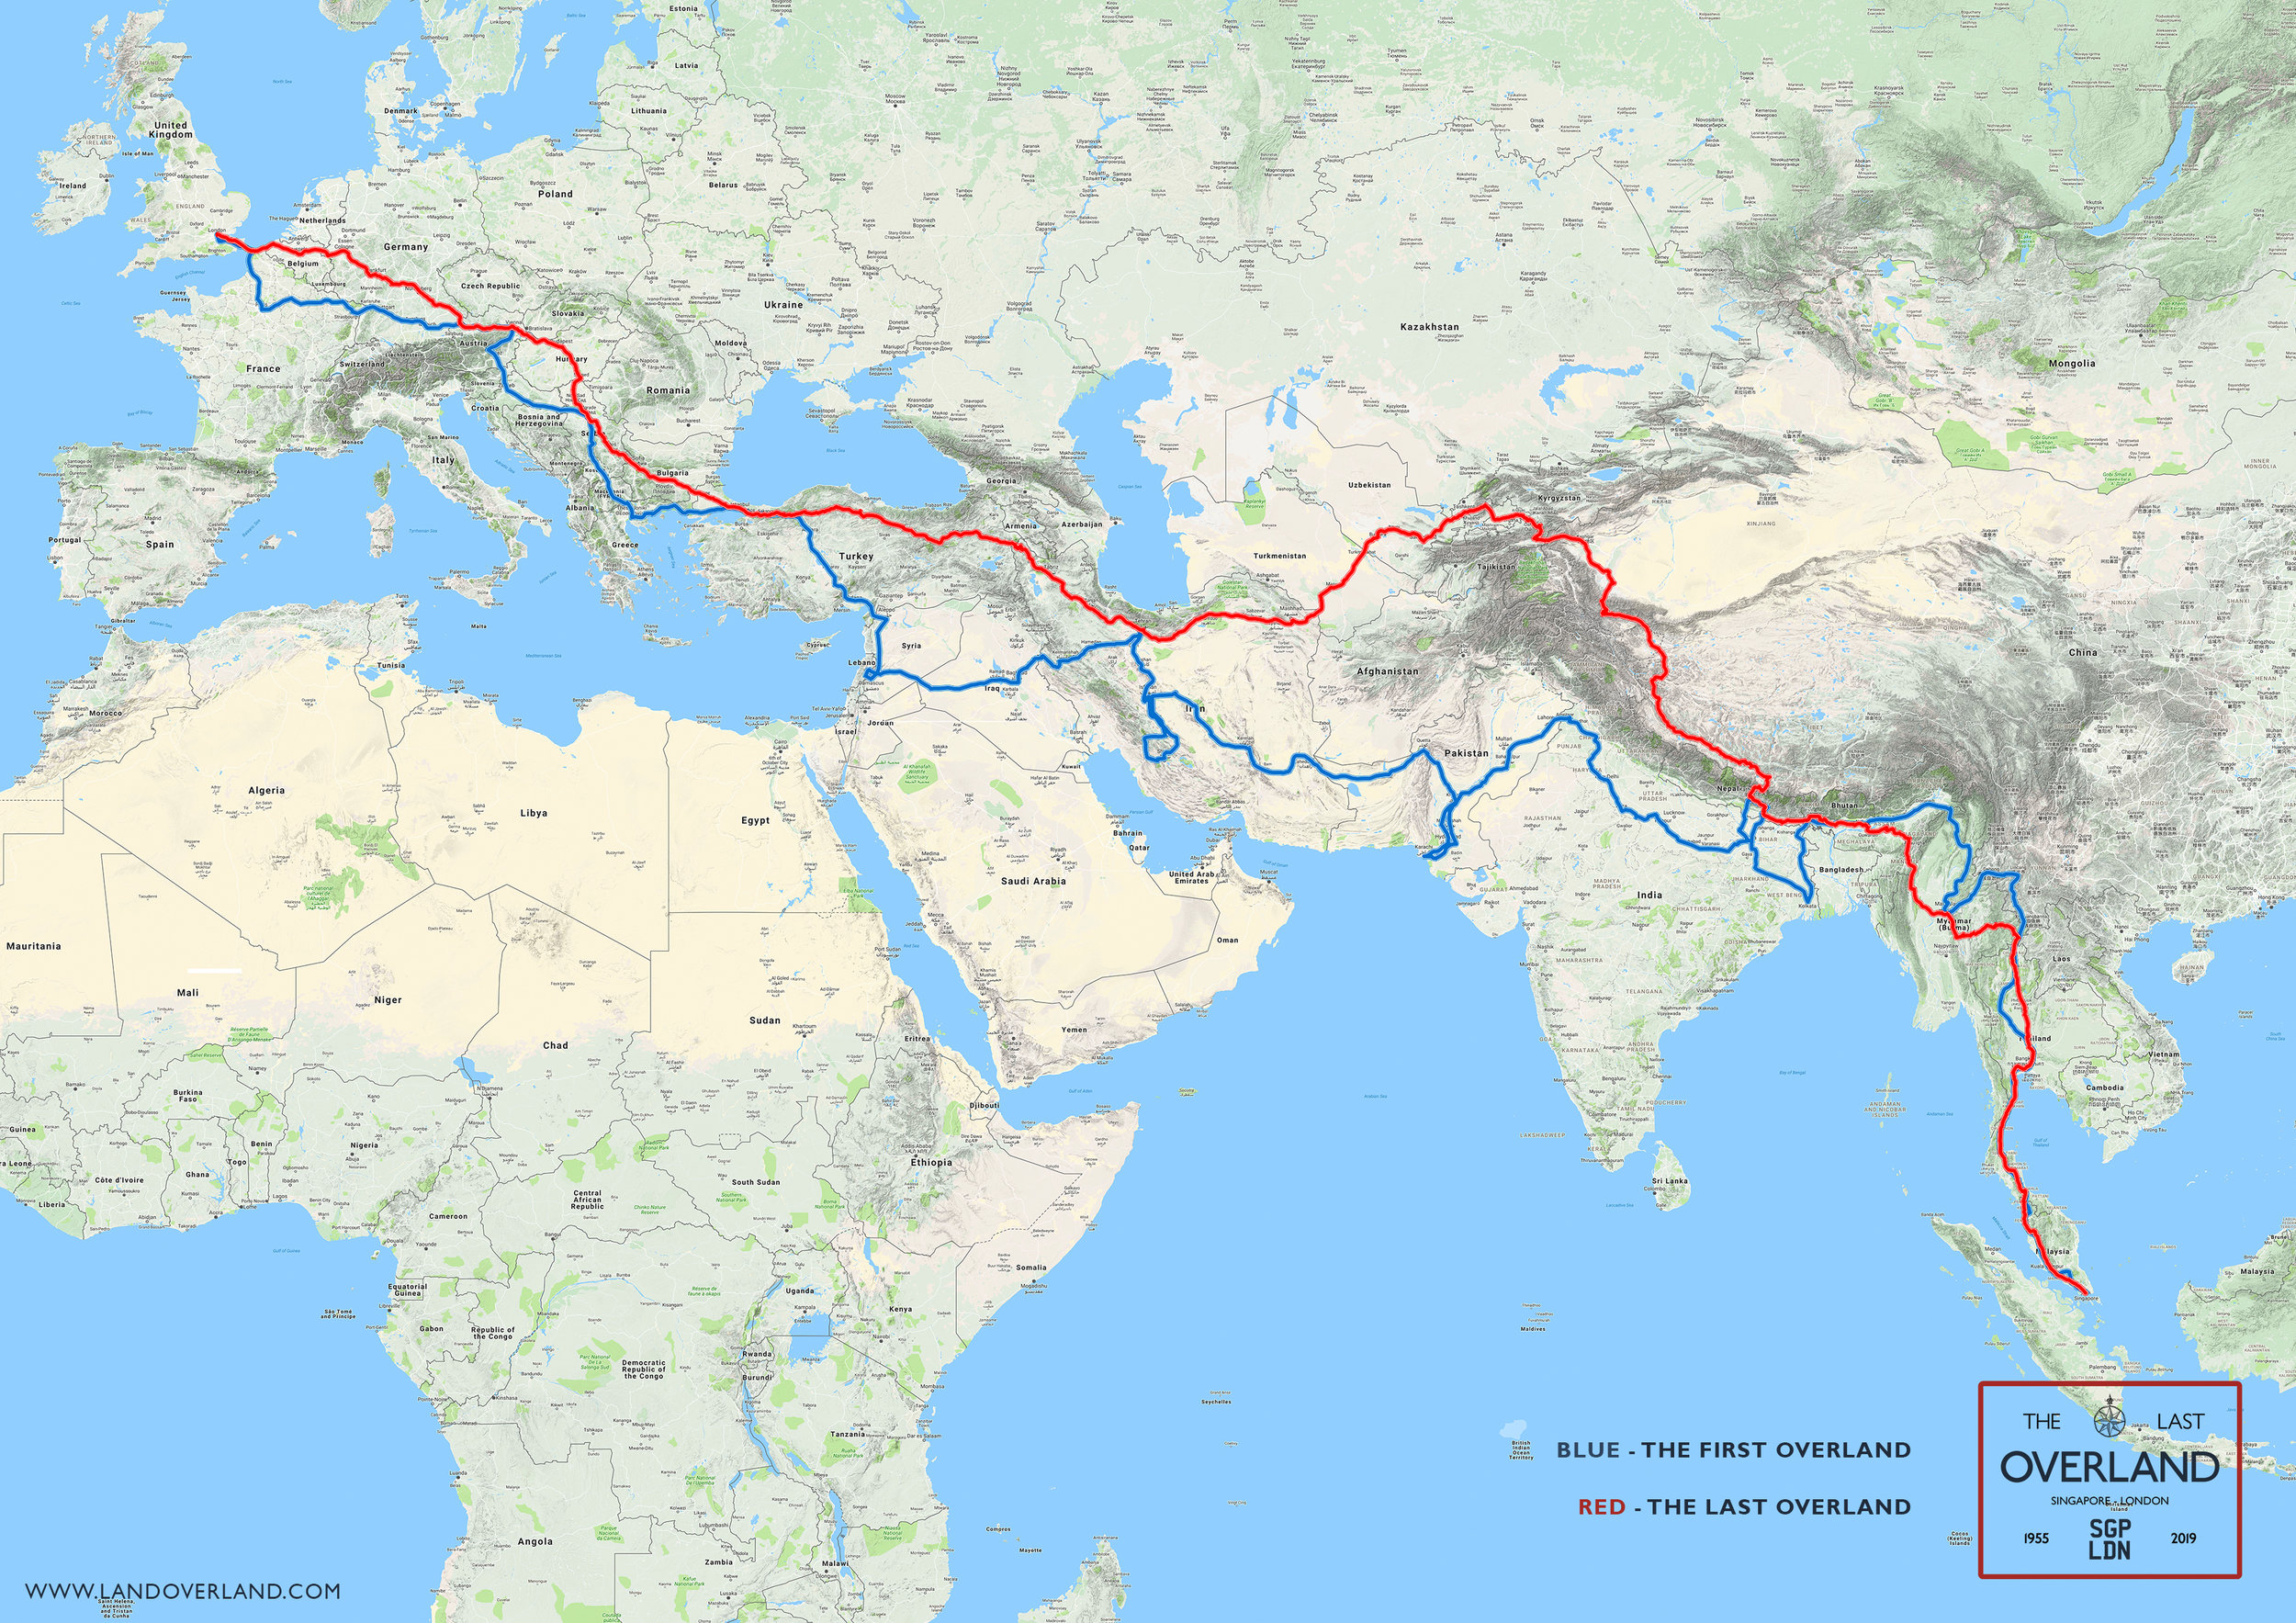 Last Overland route map